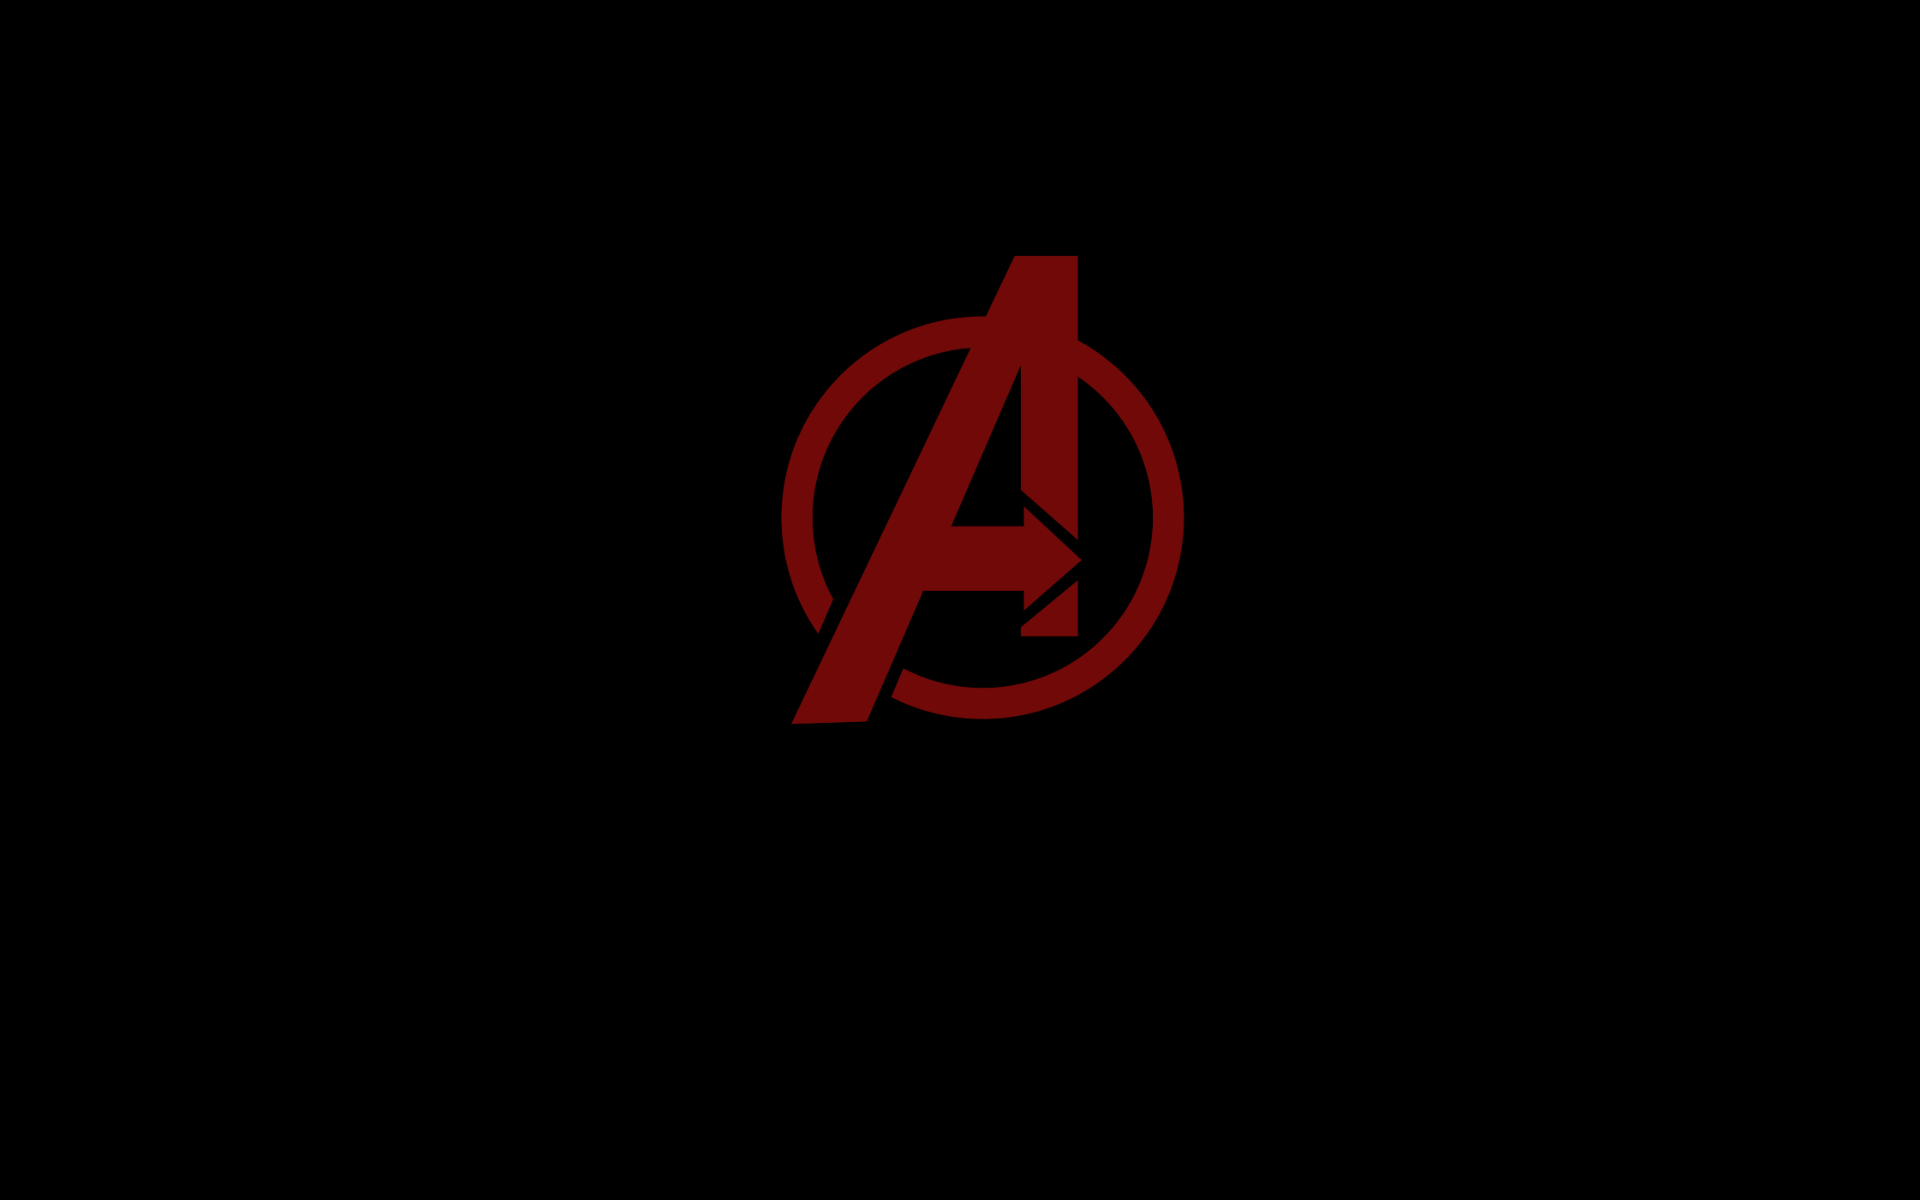 71 avengers logo wallpaper on wallpapersafari avengers logo wallpaper on wallpapersafari